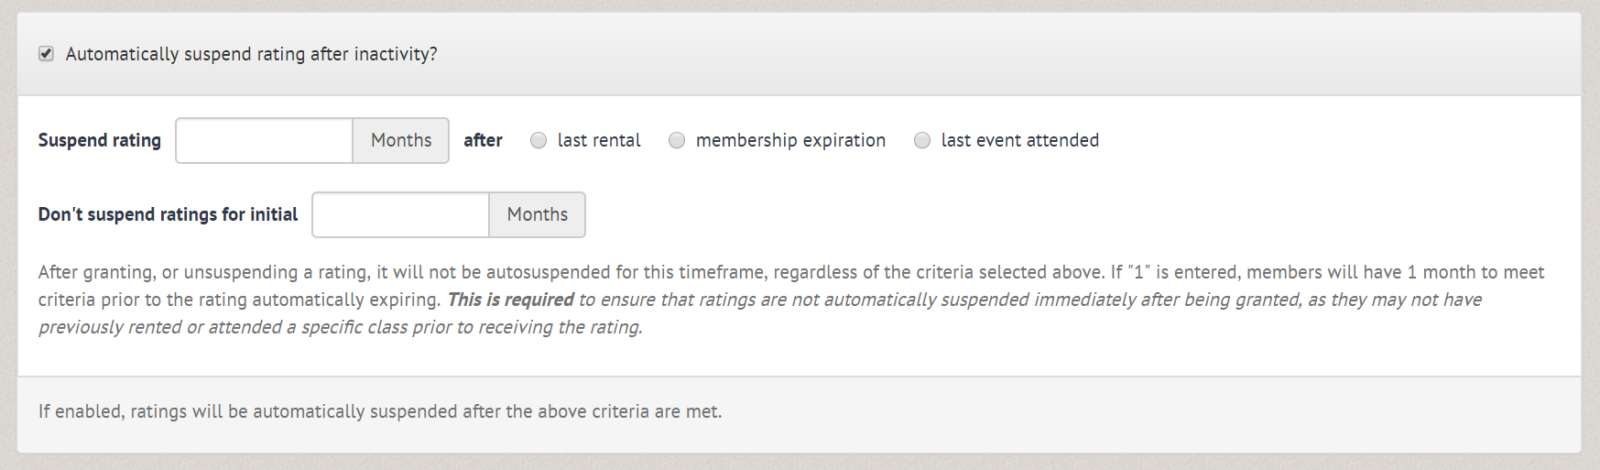 Auto suspend rating